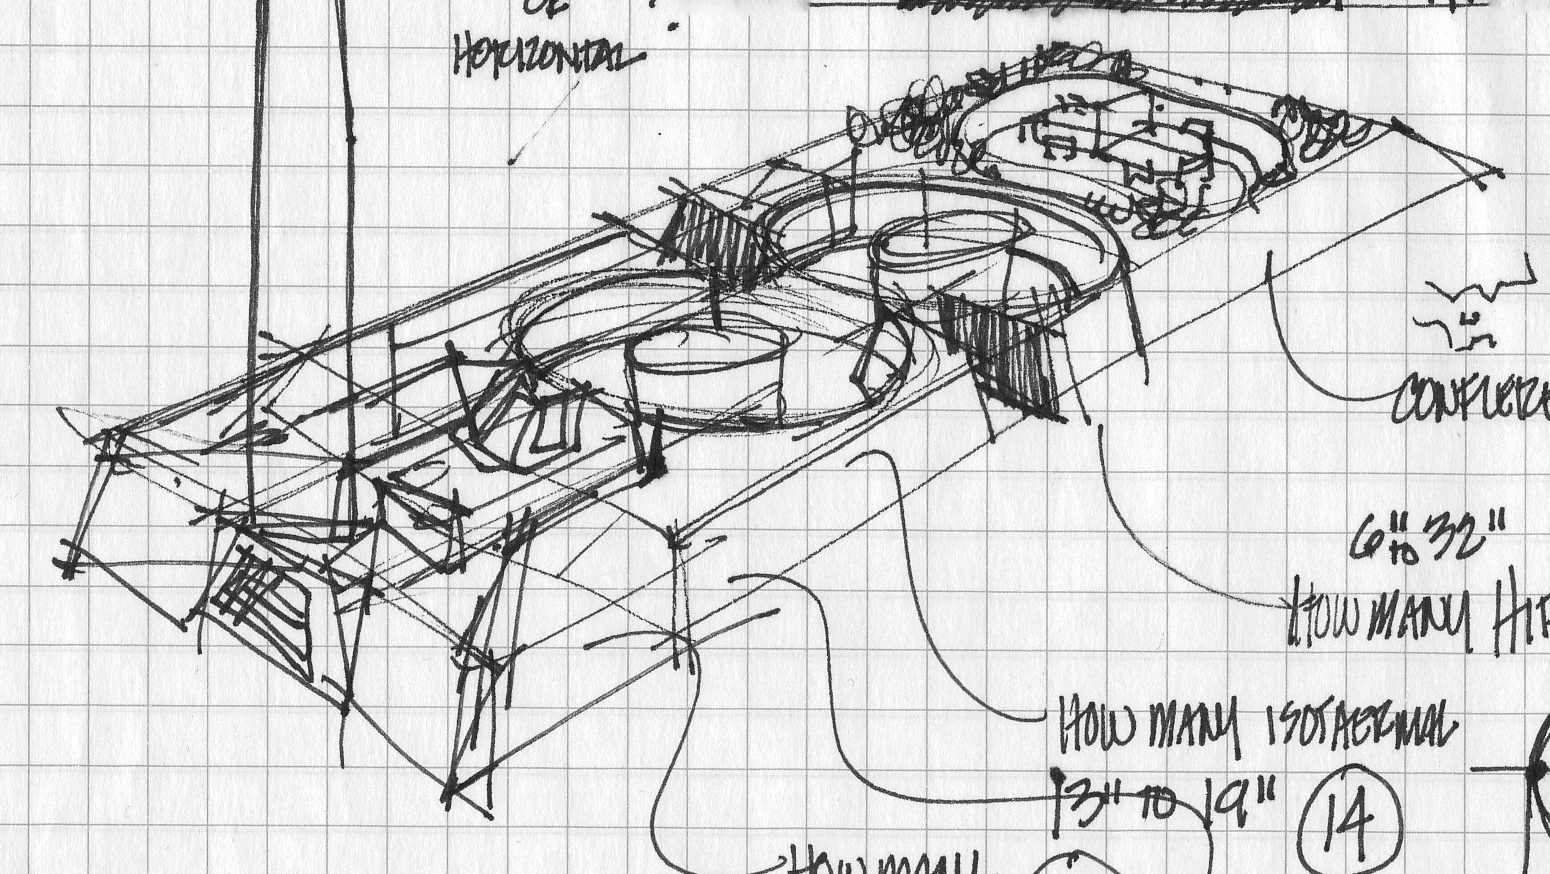 First sketch of the exhibit plan, shown above and at a diagonal.